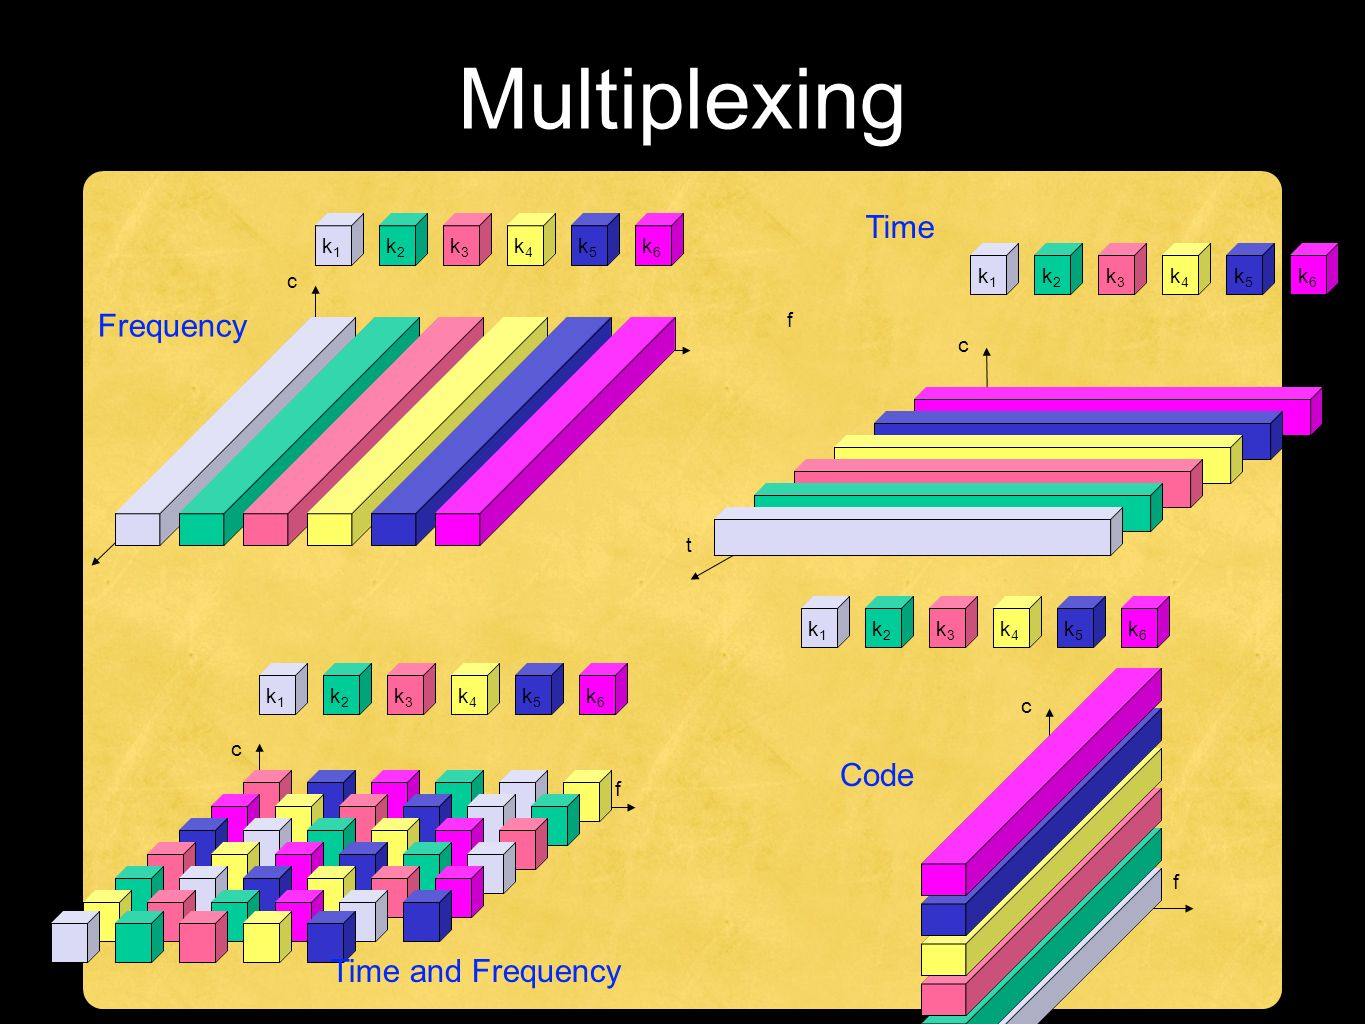 Multiplexing k2k2 k3k3 k4k4 k5k5 k6k6 k1k1 f t c f t c k2k2 k3k3 k4k4 k5k5 k6k6 k1k1 f t c k2k2 k3k3 k4k4 k5k5 k6k6 k1k1 k2k2 k3k3 k4k4 k5k5 k6k6 k1k1 f t c Frequency Time Time and Frequency Code